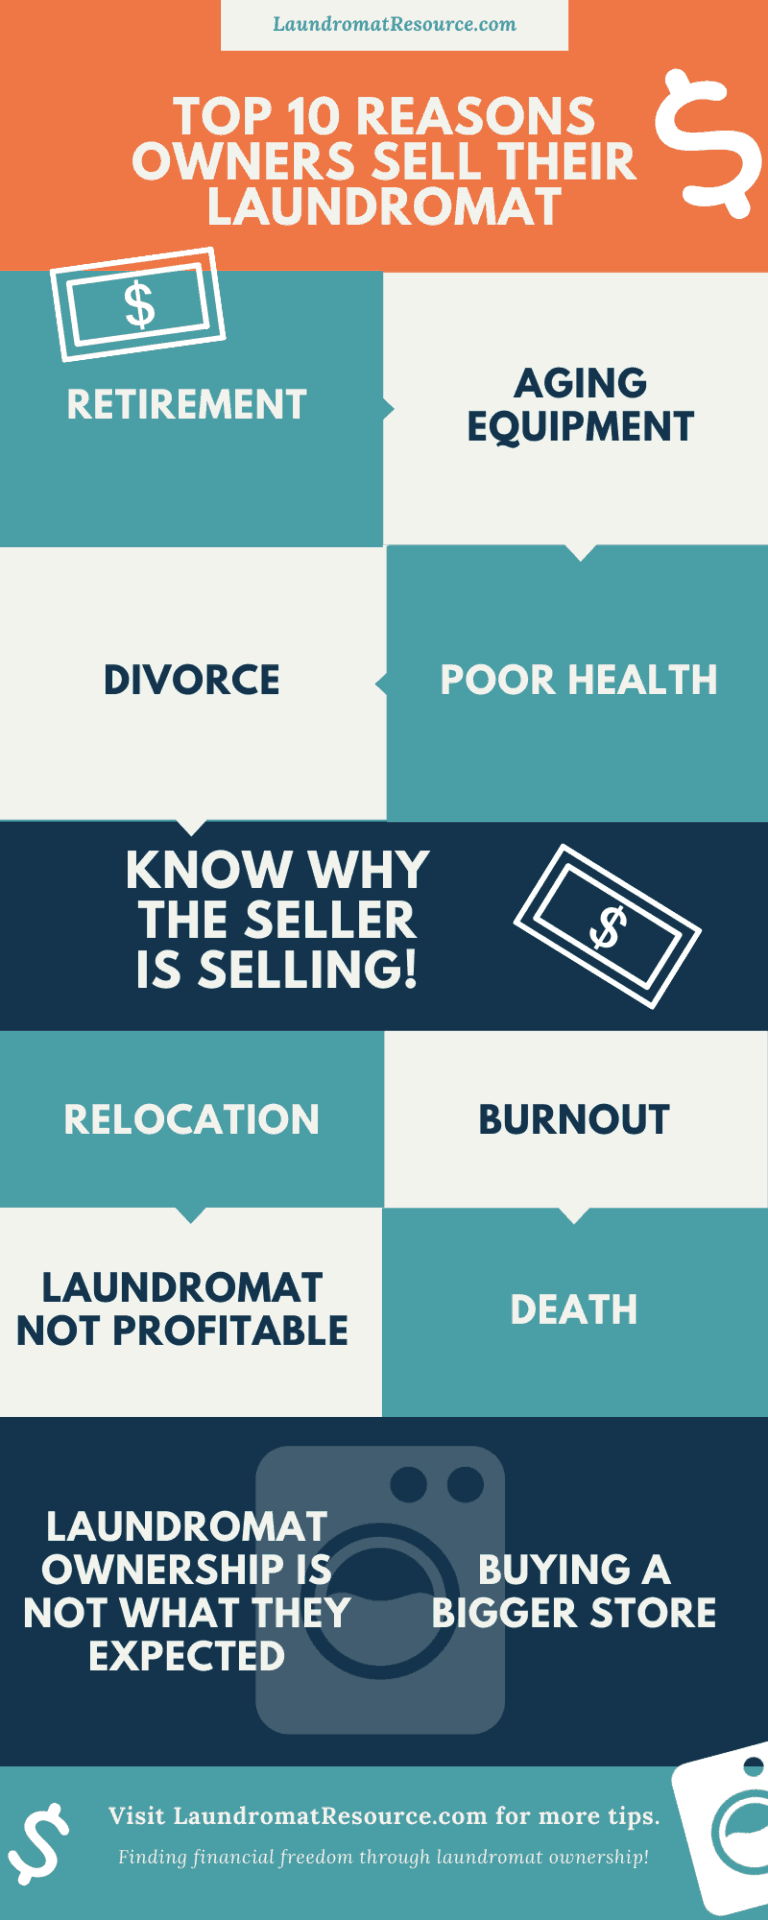 10 reasons laundromat owners sell their laundromat